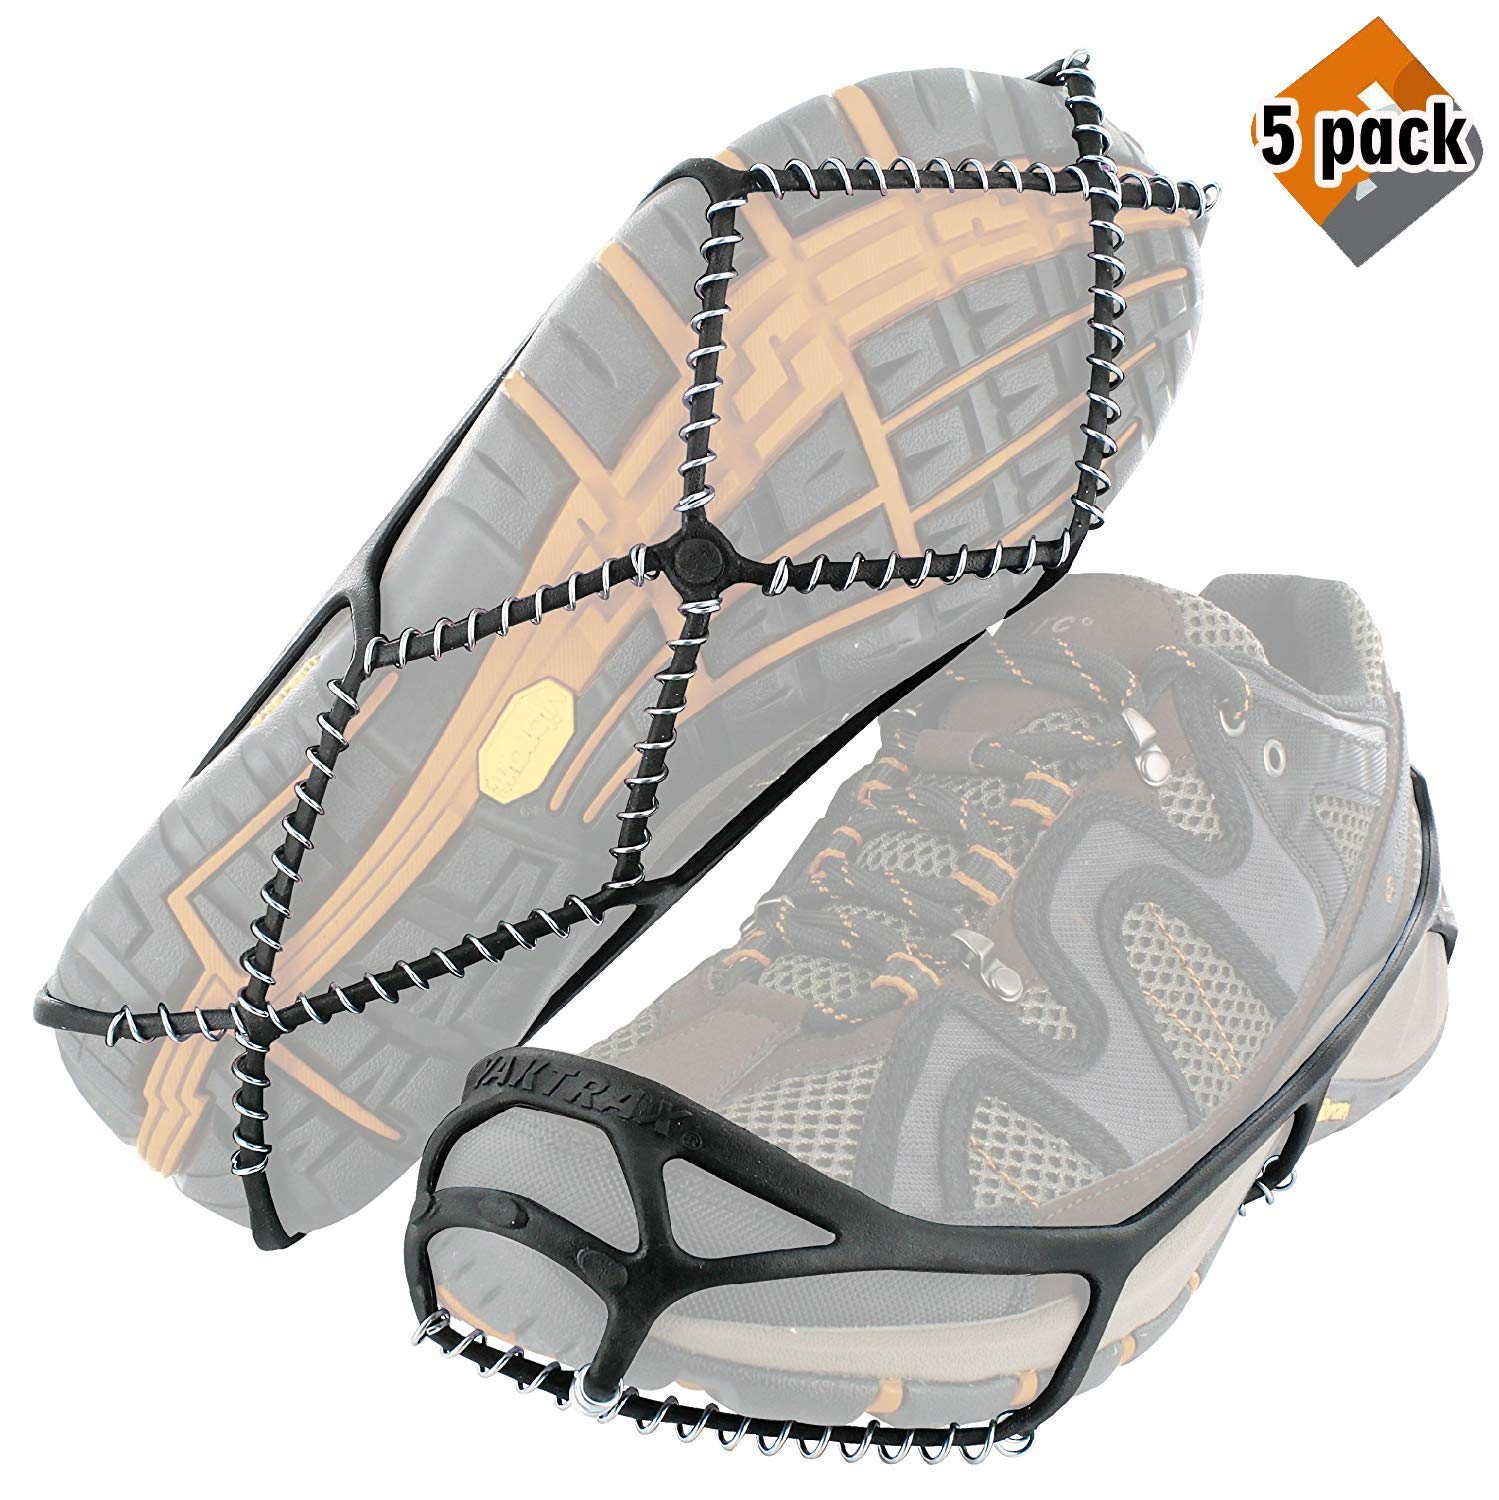 Yaktrax Walk Traction Cleats for Walking on Snow and Ice (1 Pair), Small - 5 Pack by Yaktrax